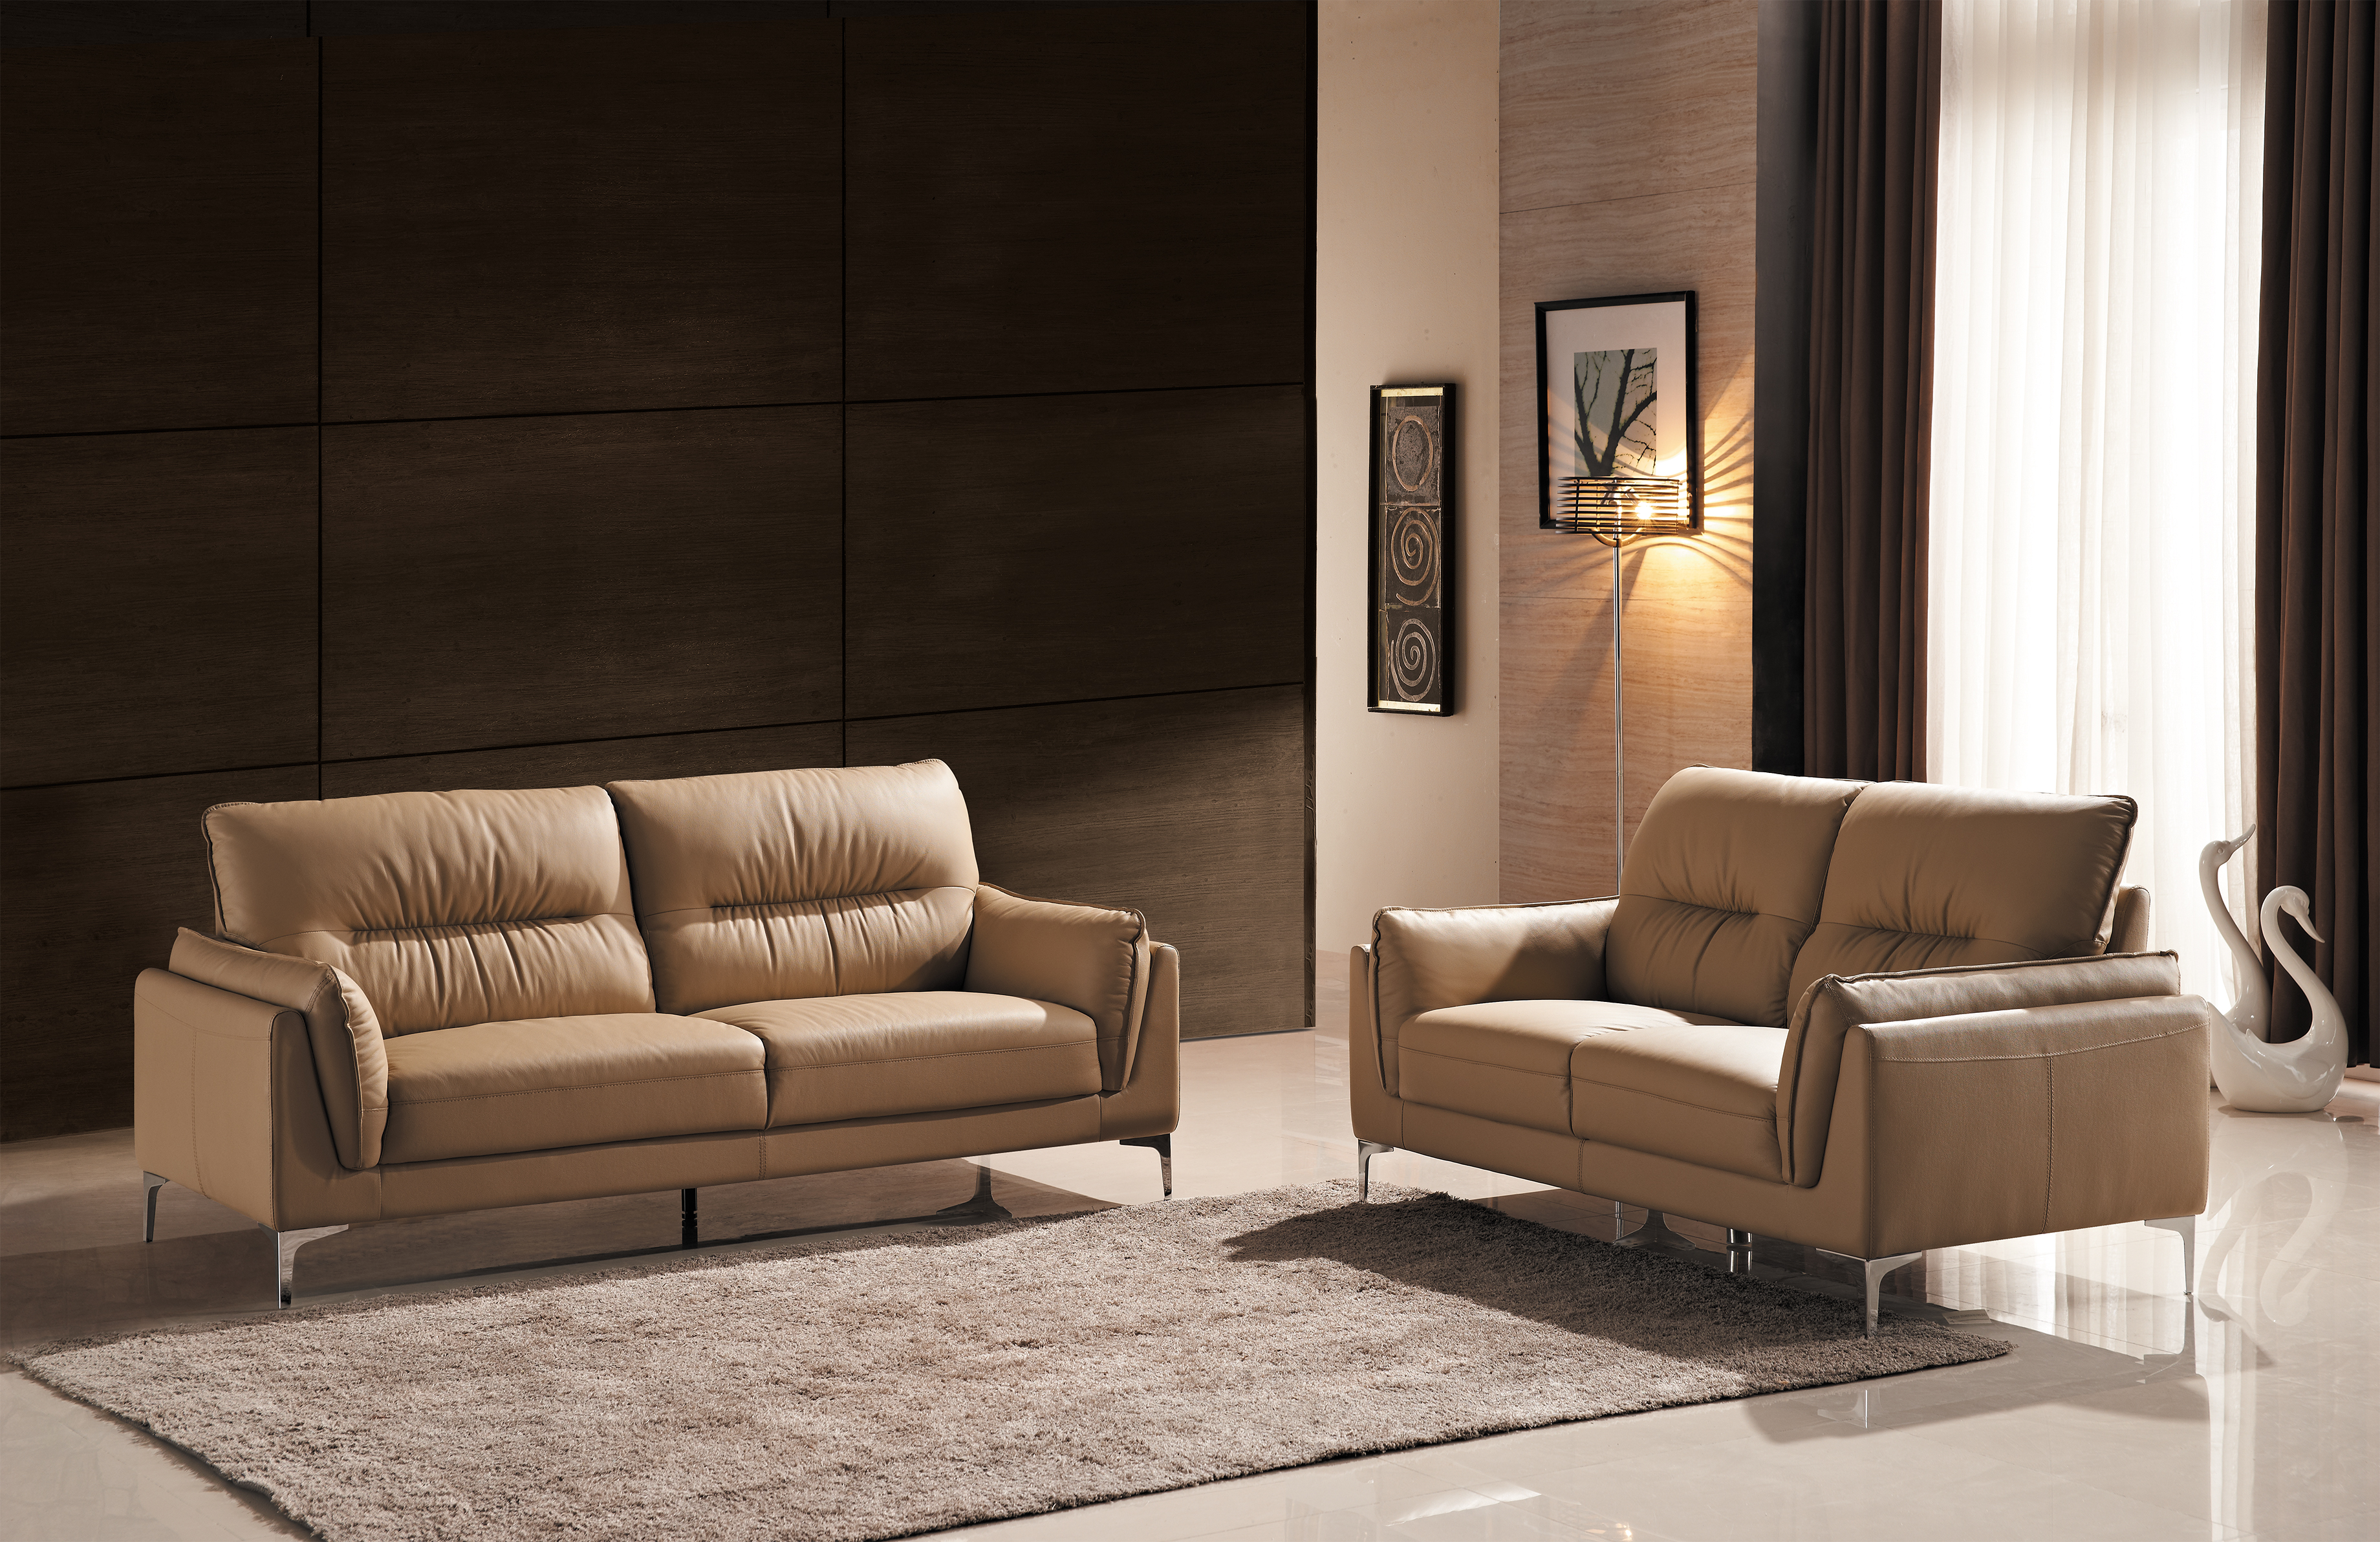 Leather Furniture Vancouver Leather Sofas Quality Leather Furniture At Affordable